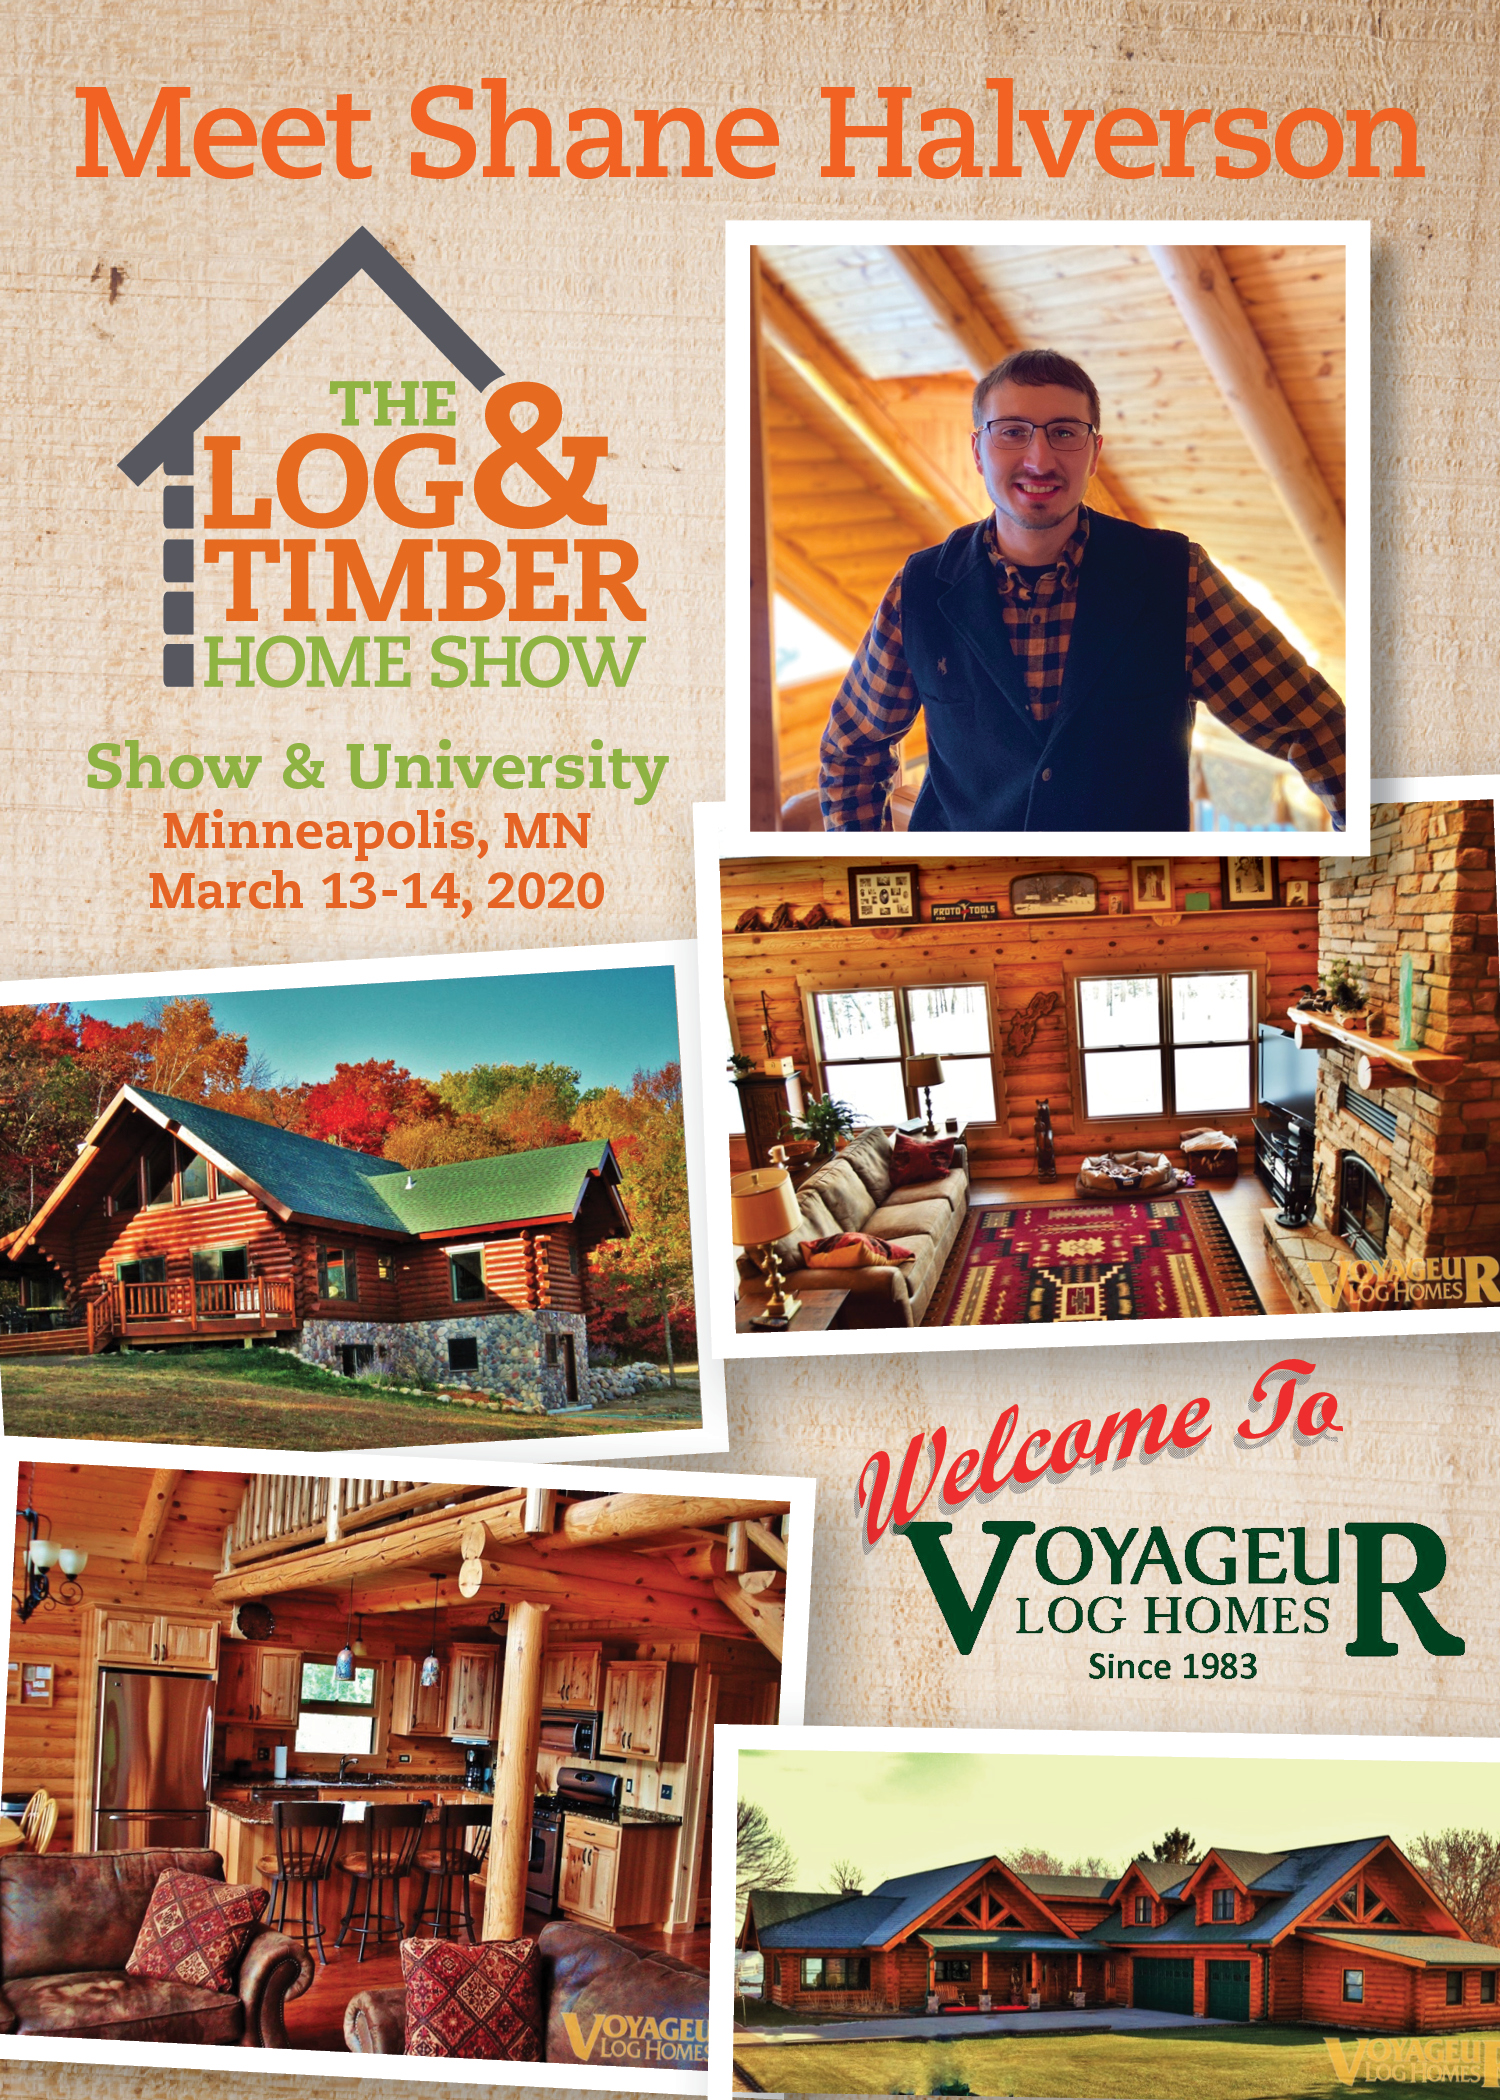 Voyageur Log Homes | Shane Halverson | Workshop Spotlight | March 13-14, 2020